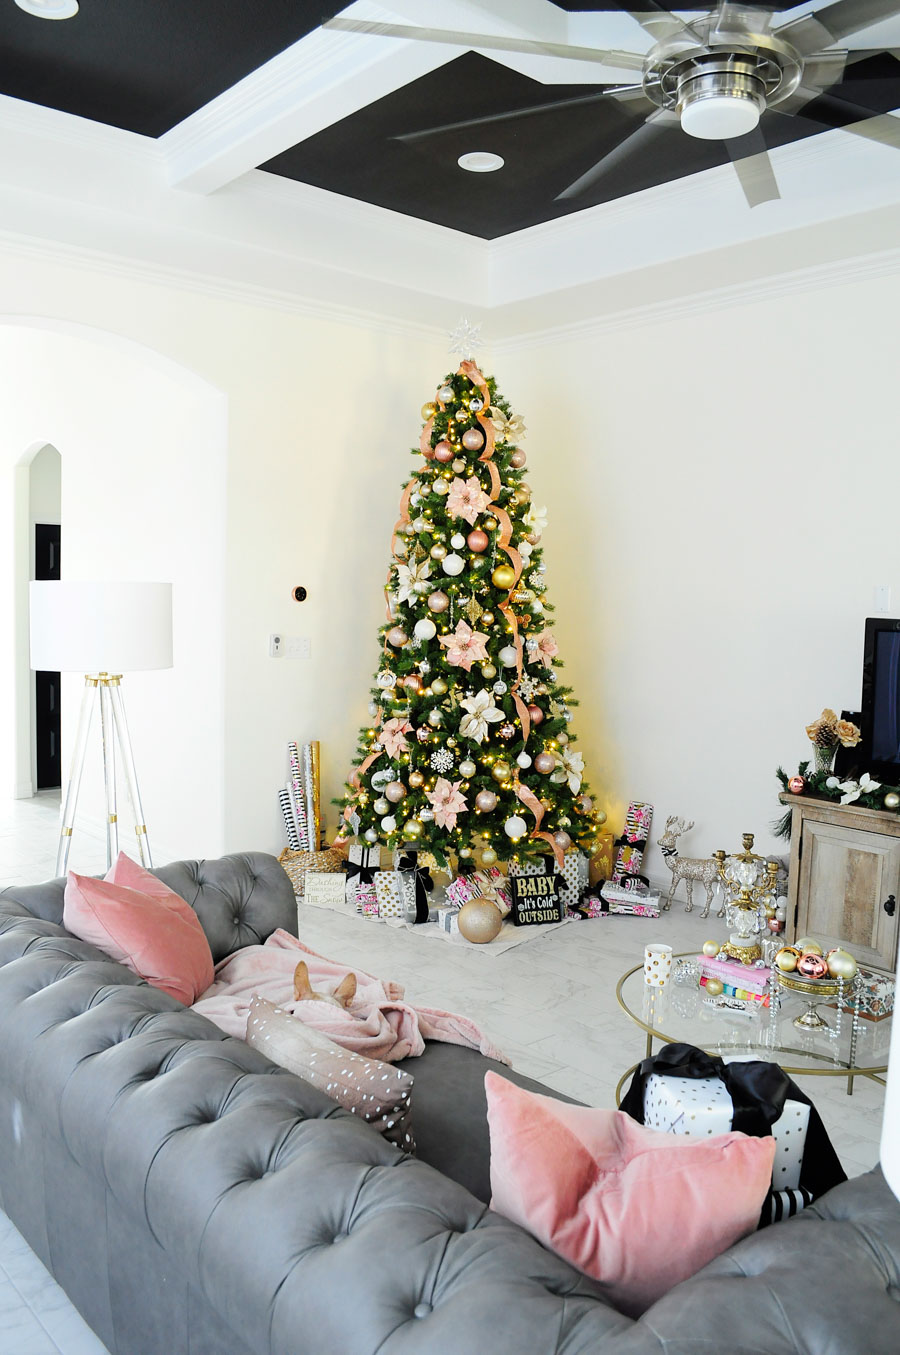 Love this blush, gold, silver and white Christmas tree decor paired with the gray chesterfield Feminine, glam perfection in a living room space.